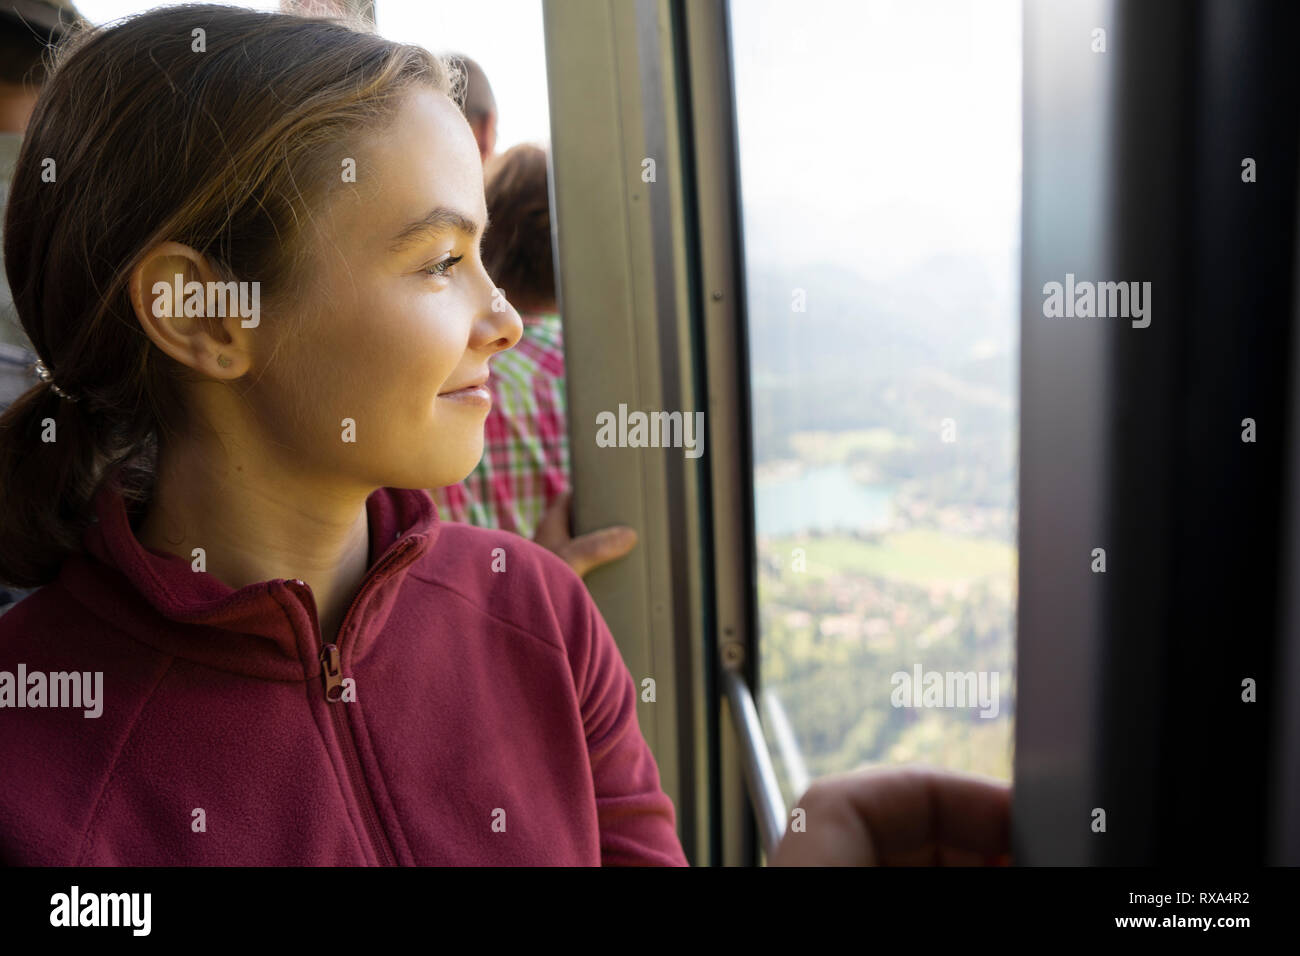 Smiling woman looking through window while traveling in overhead cable car - Stock Image